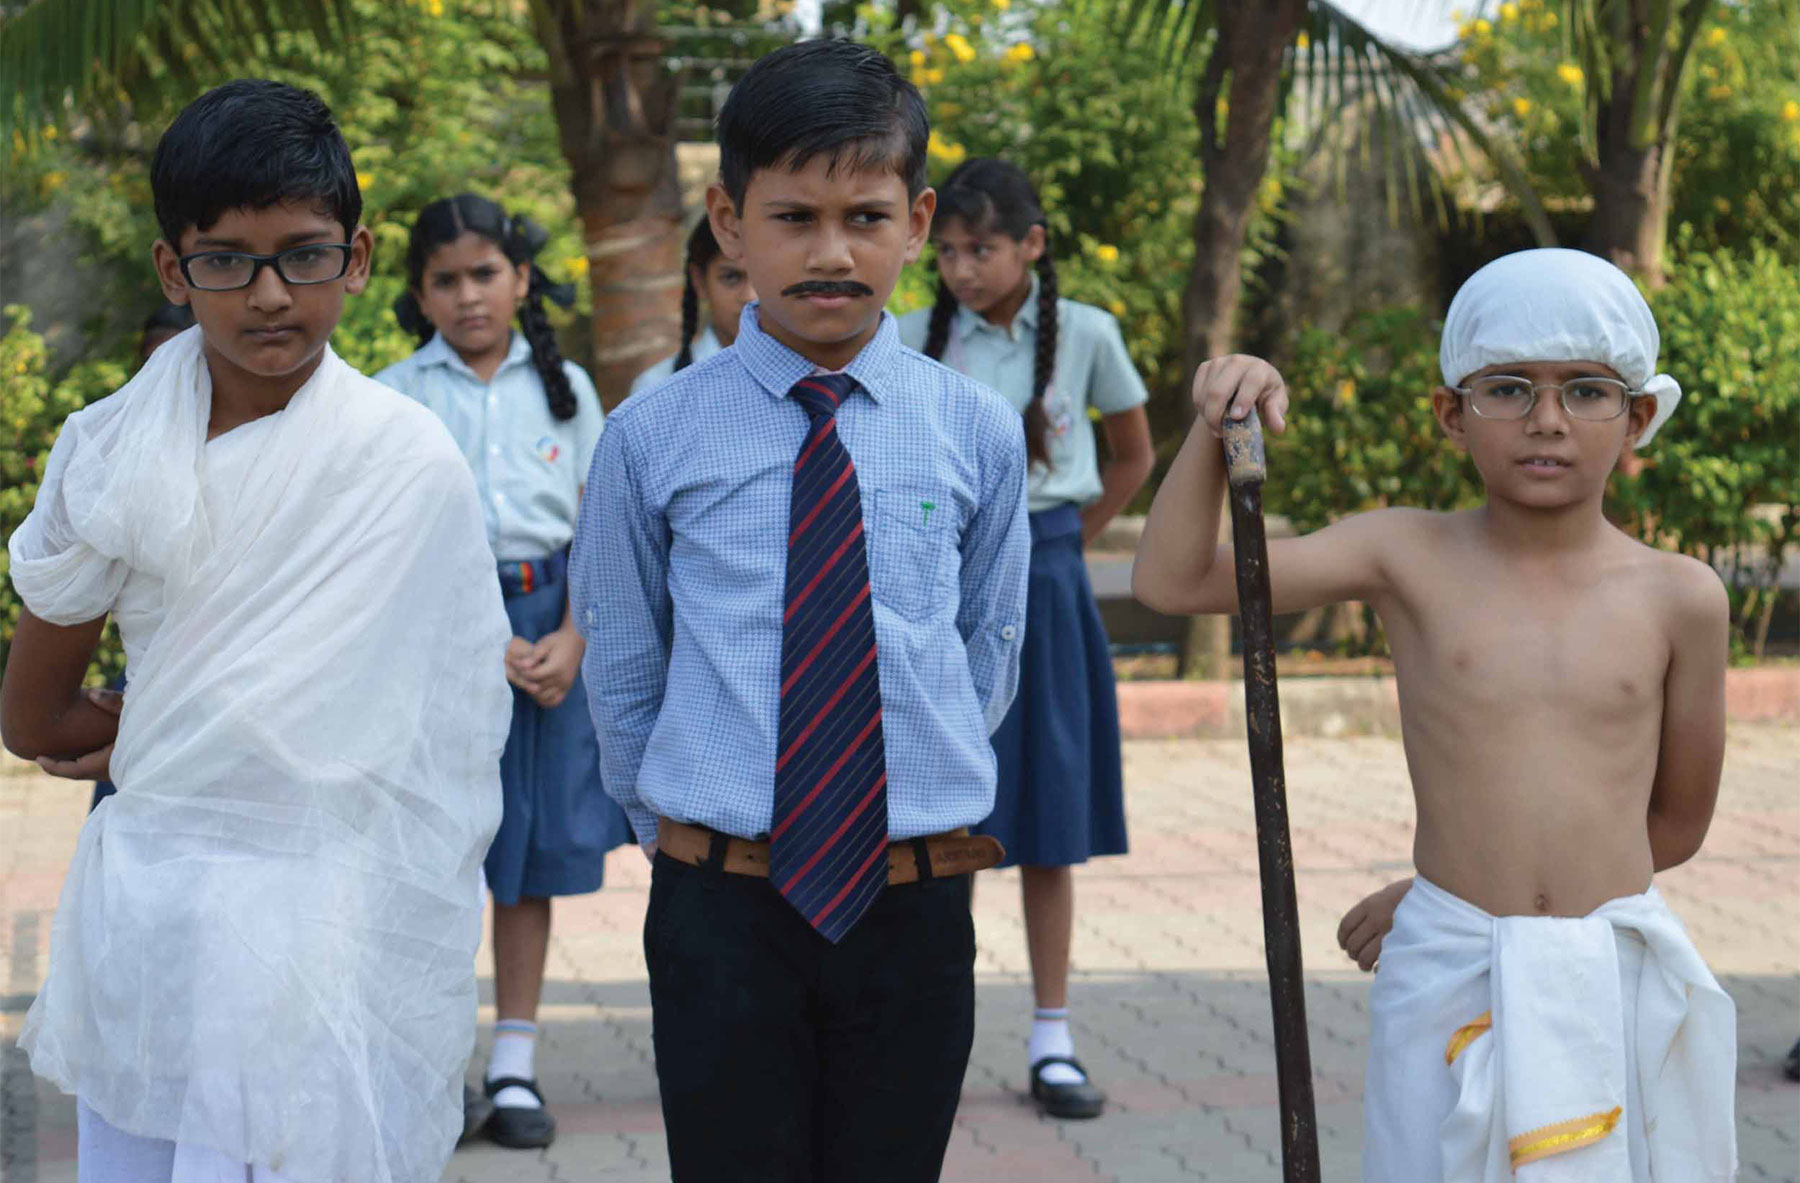 Gandhi Jayanti celebrated with great zeal, zest and patriotism in the school